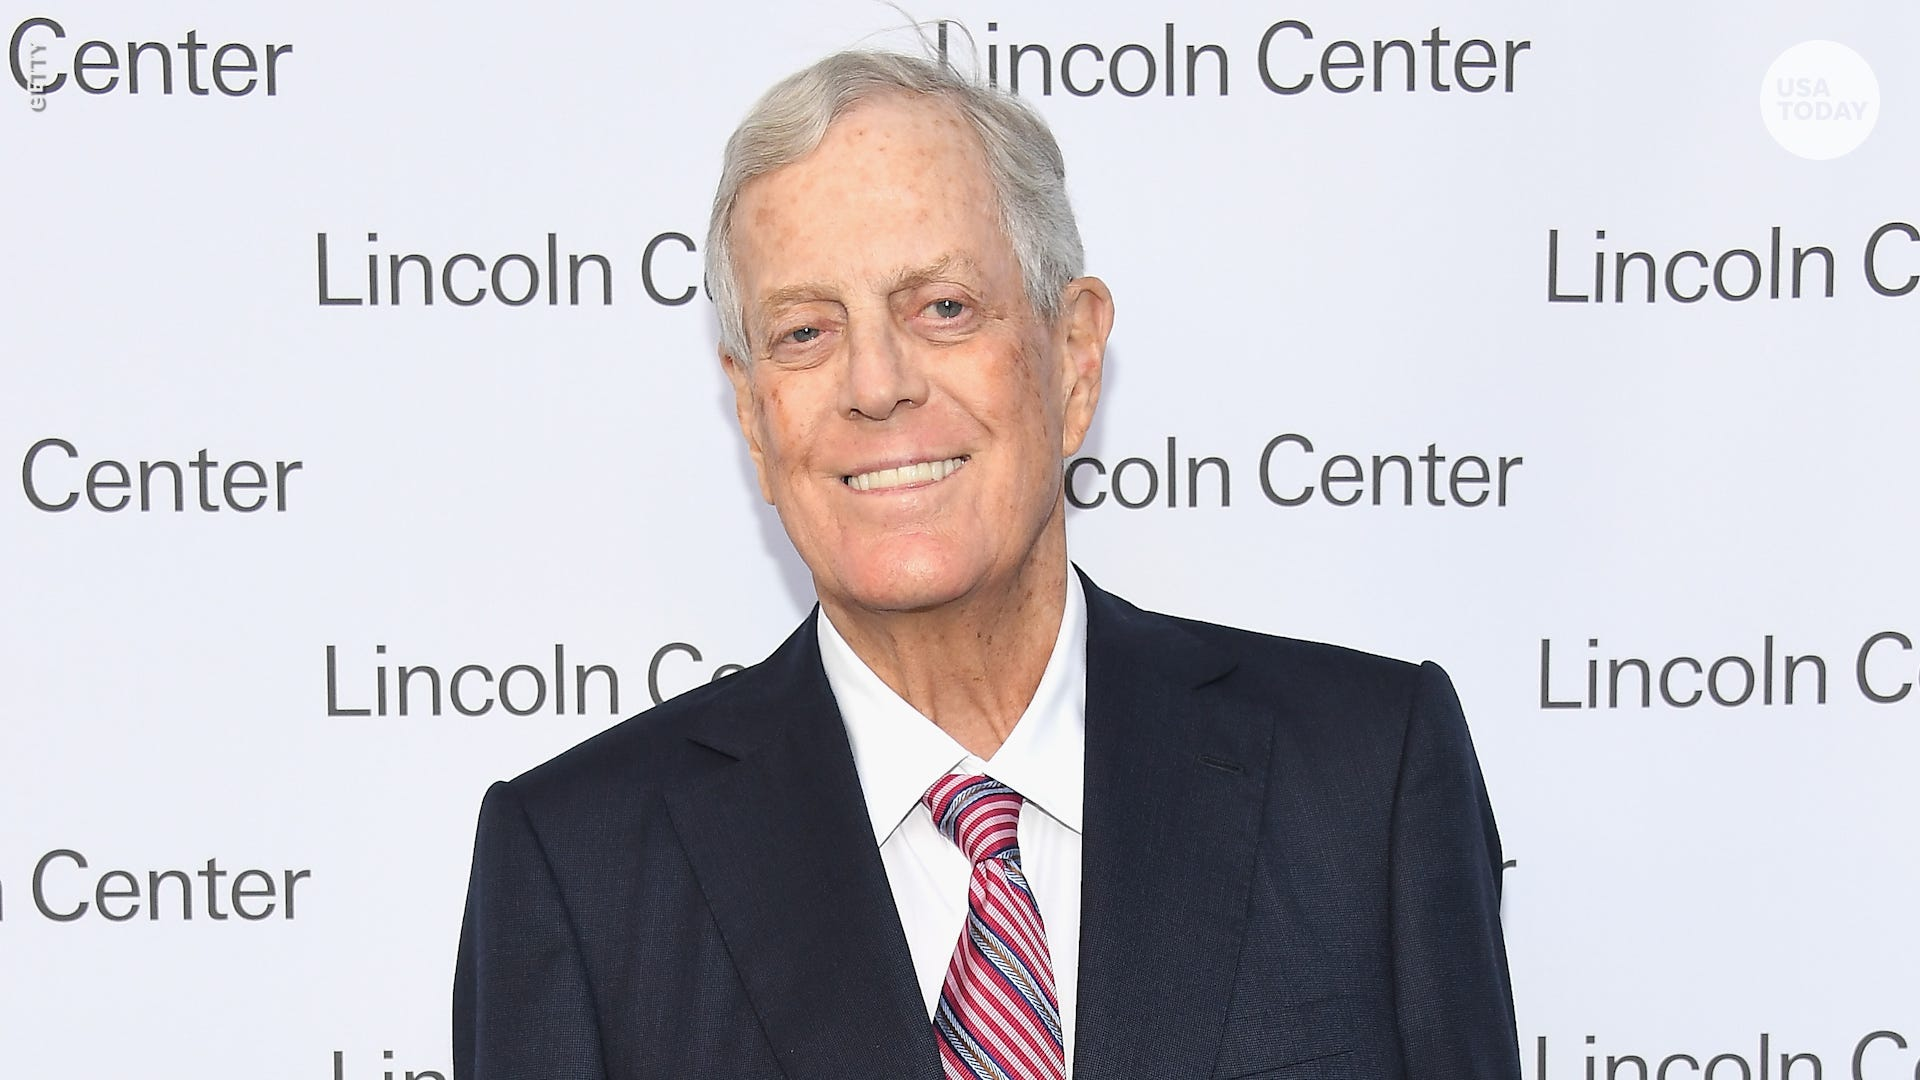 Charles David Koch We Know Who You Are >> David Koch Billionaire Who Built Conservative Empire Dies At 79